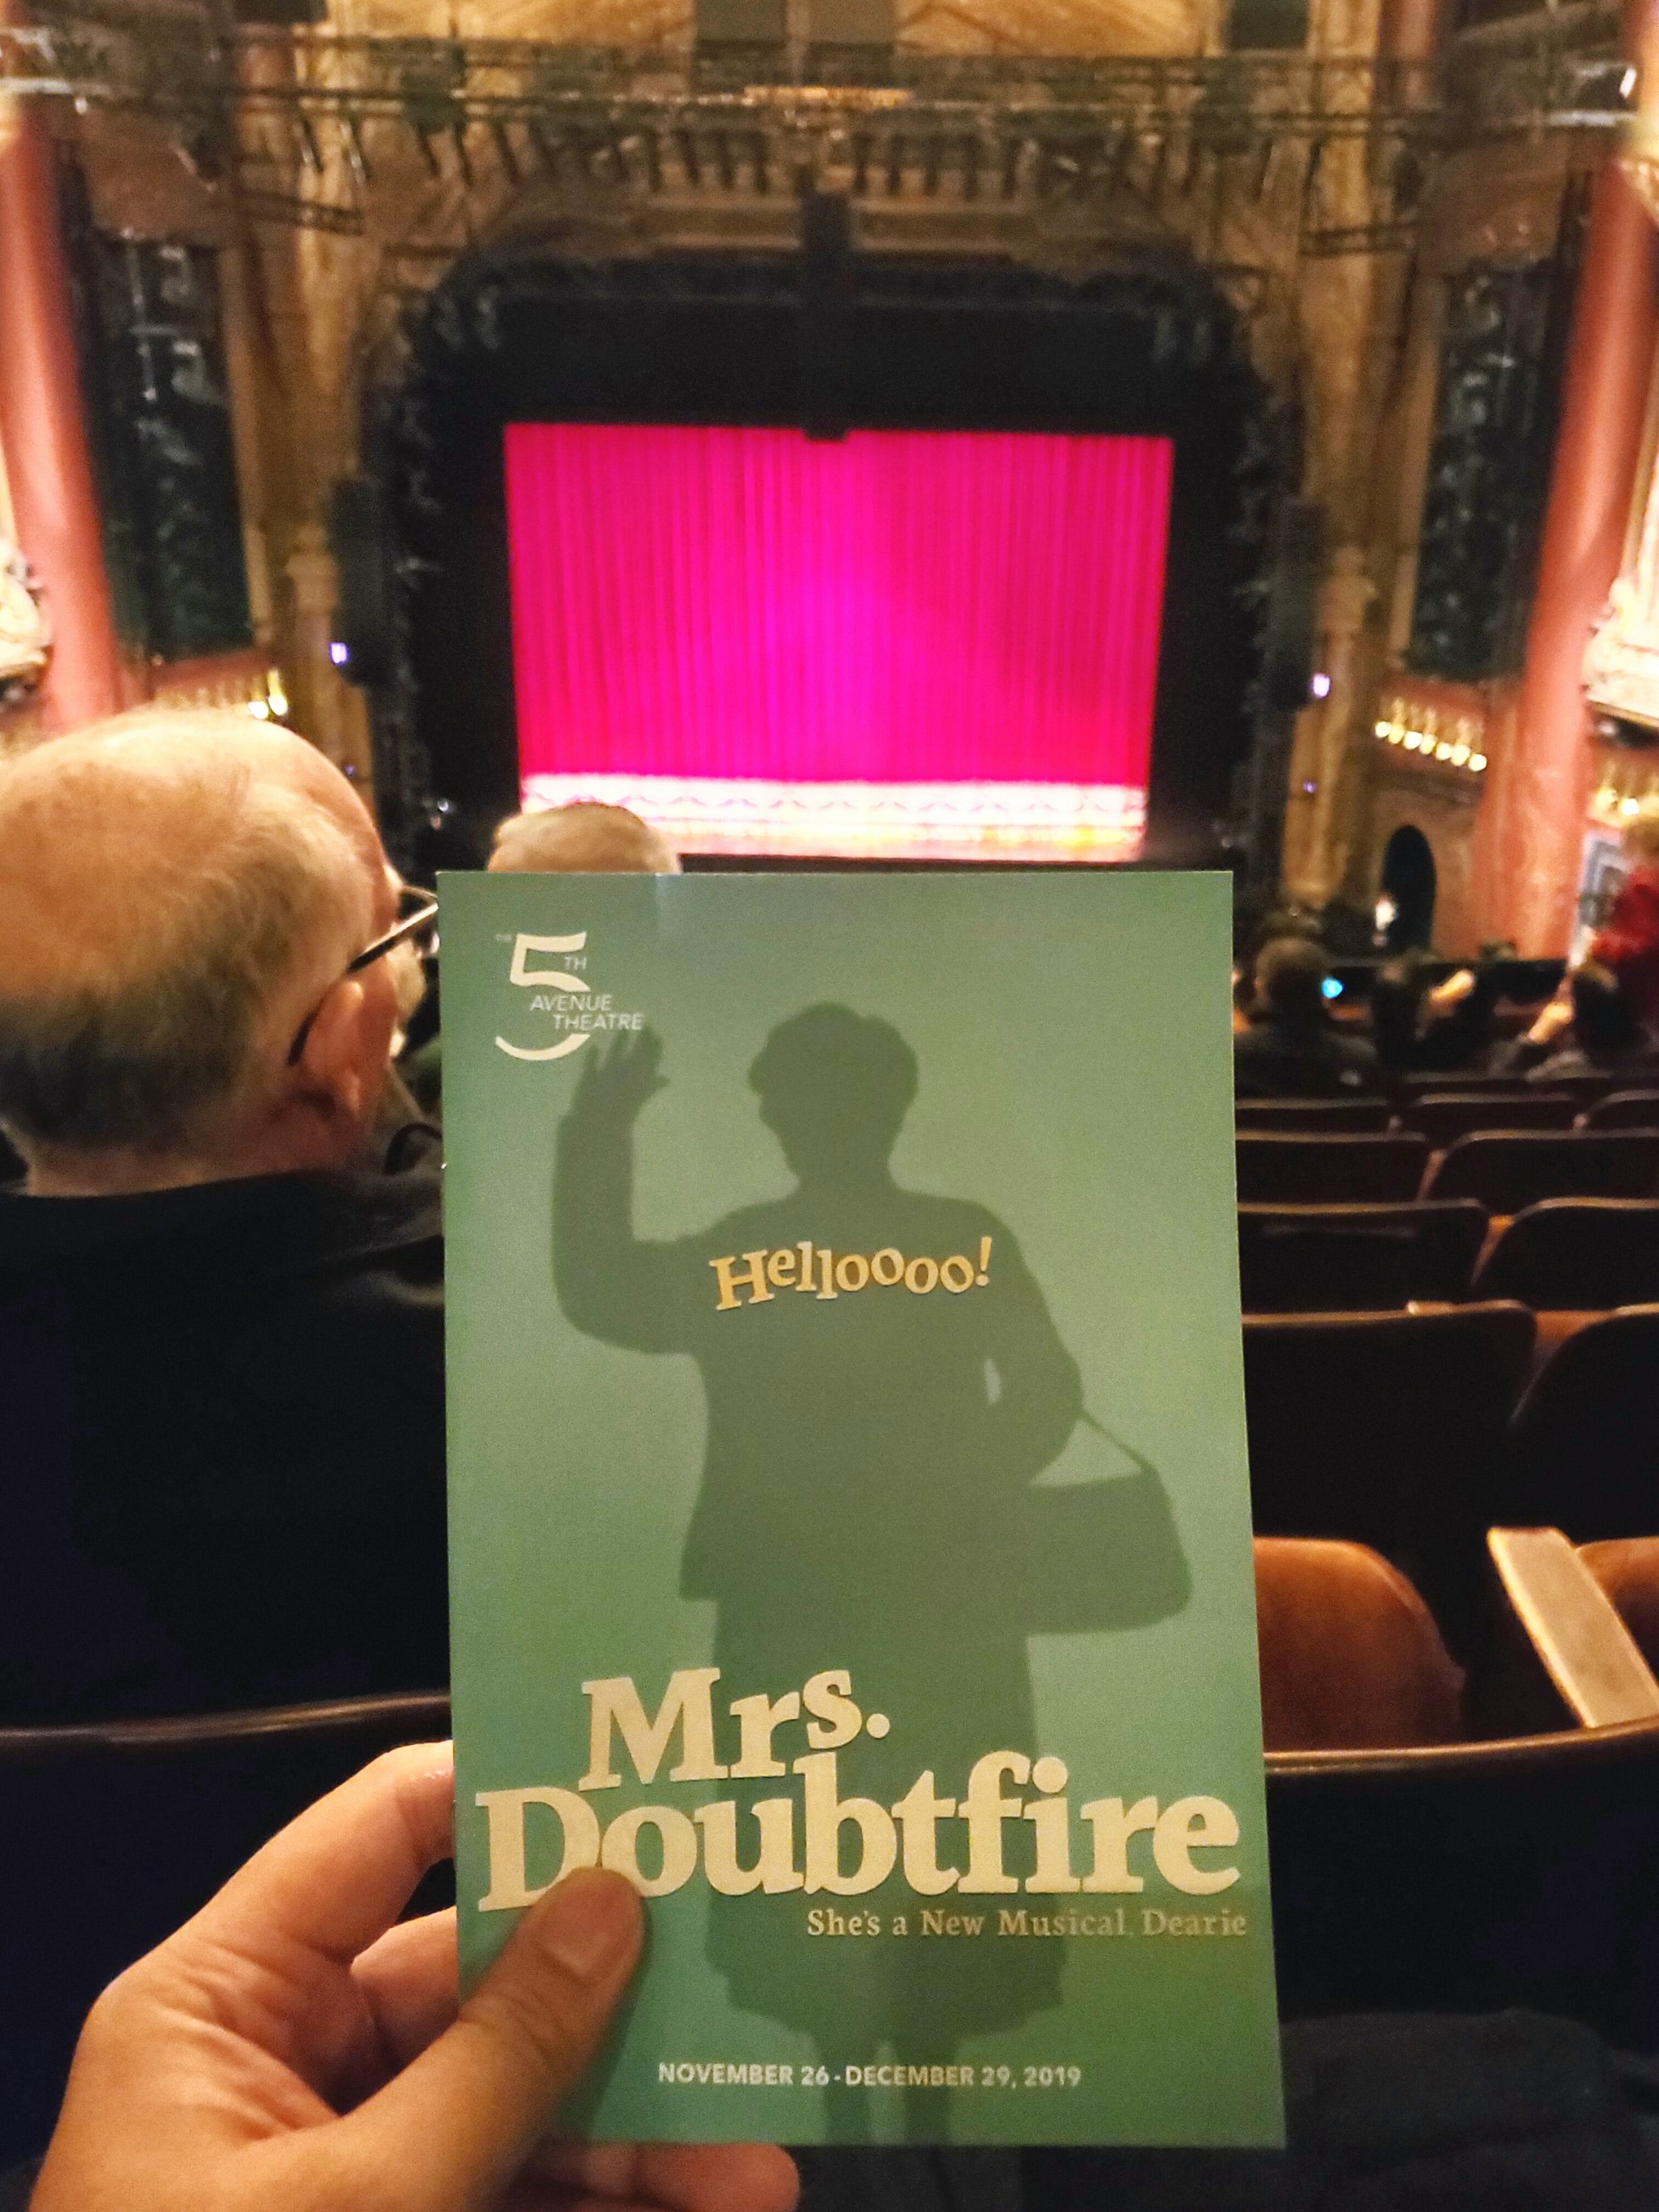 @DoubtfireBway at @The5thAvenueTheatre before it goes to #Broadway in spring 2020. #Hilarious stage #musical adaptation of the movie. Lead actor was crazy #talented.